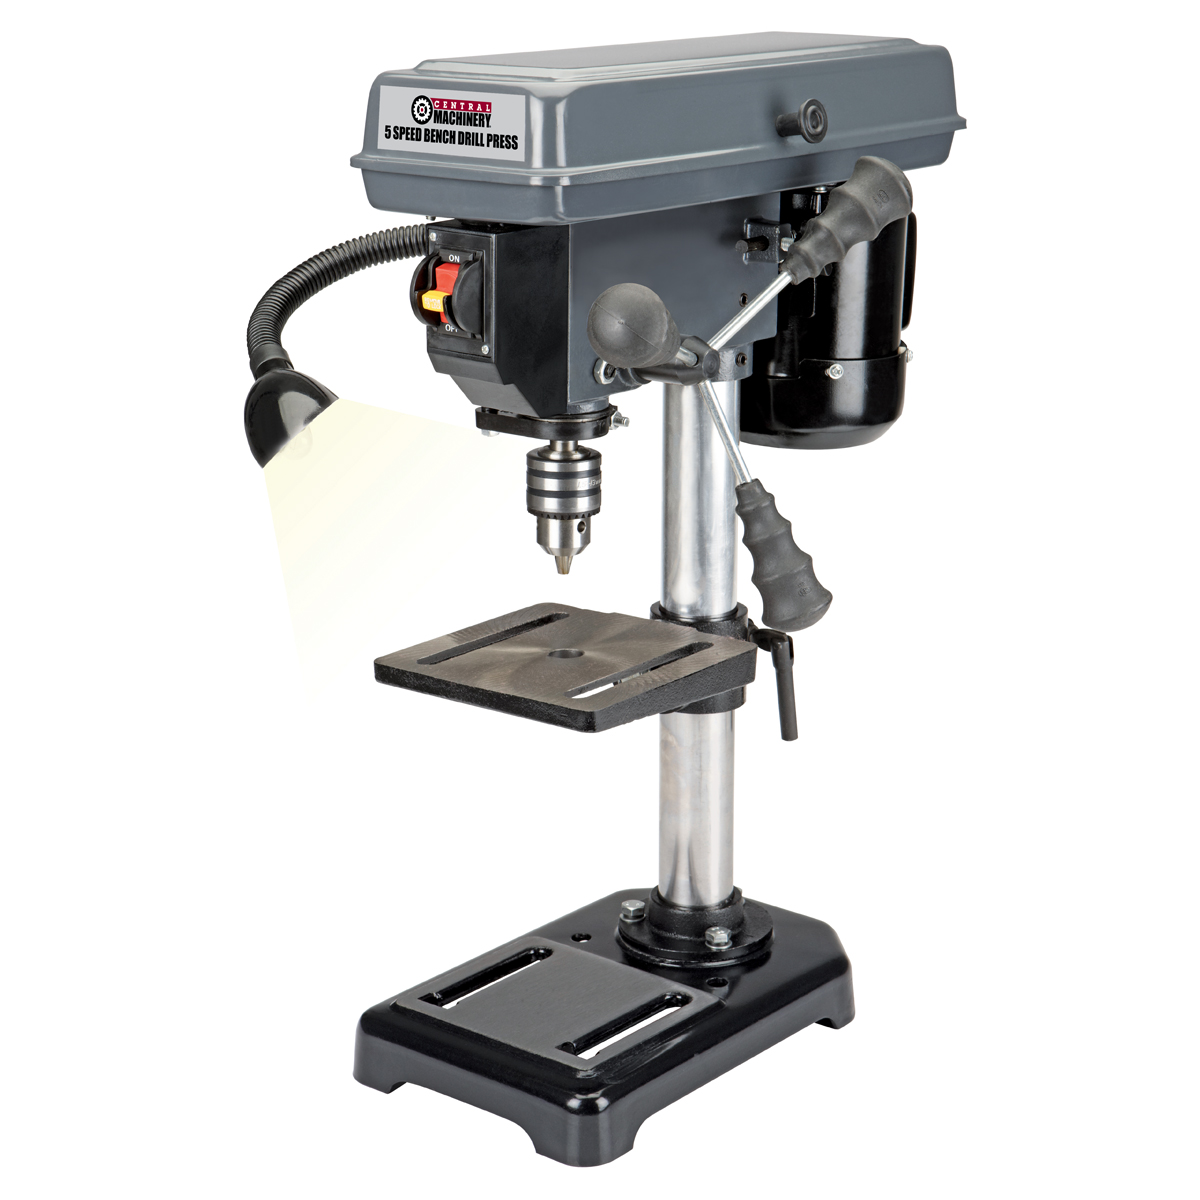 Speed Benching 28 Images 10 Quot Dual Speed Bench Table Top Polisher Buffer 1hp Ozito 350w